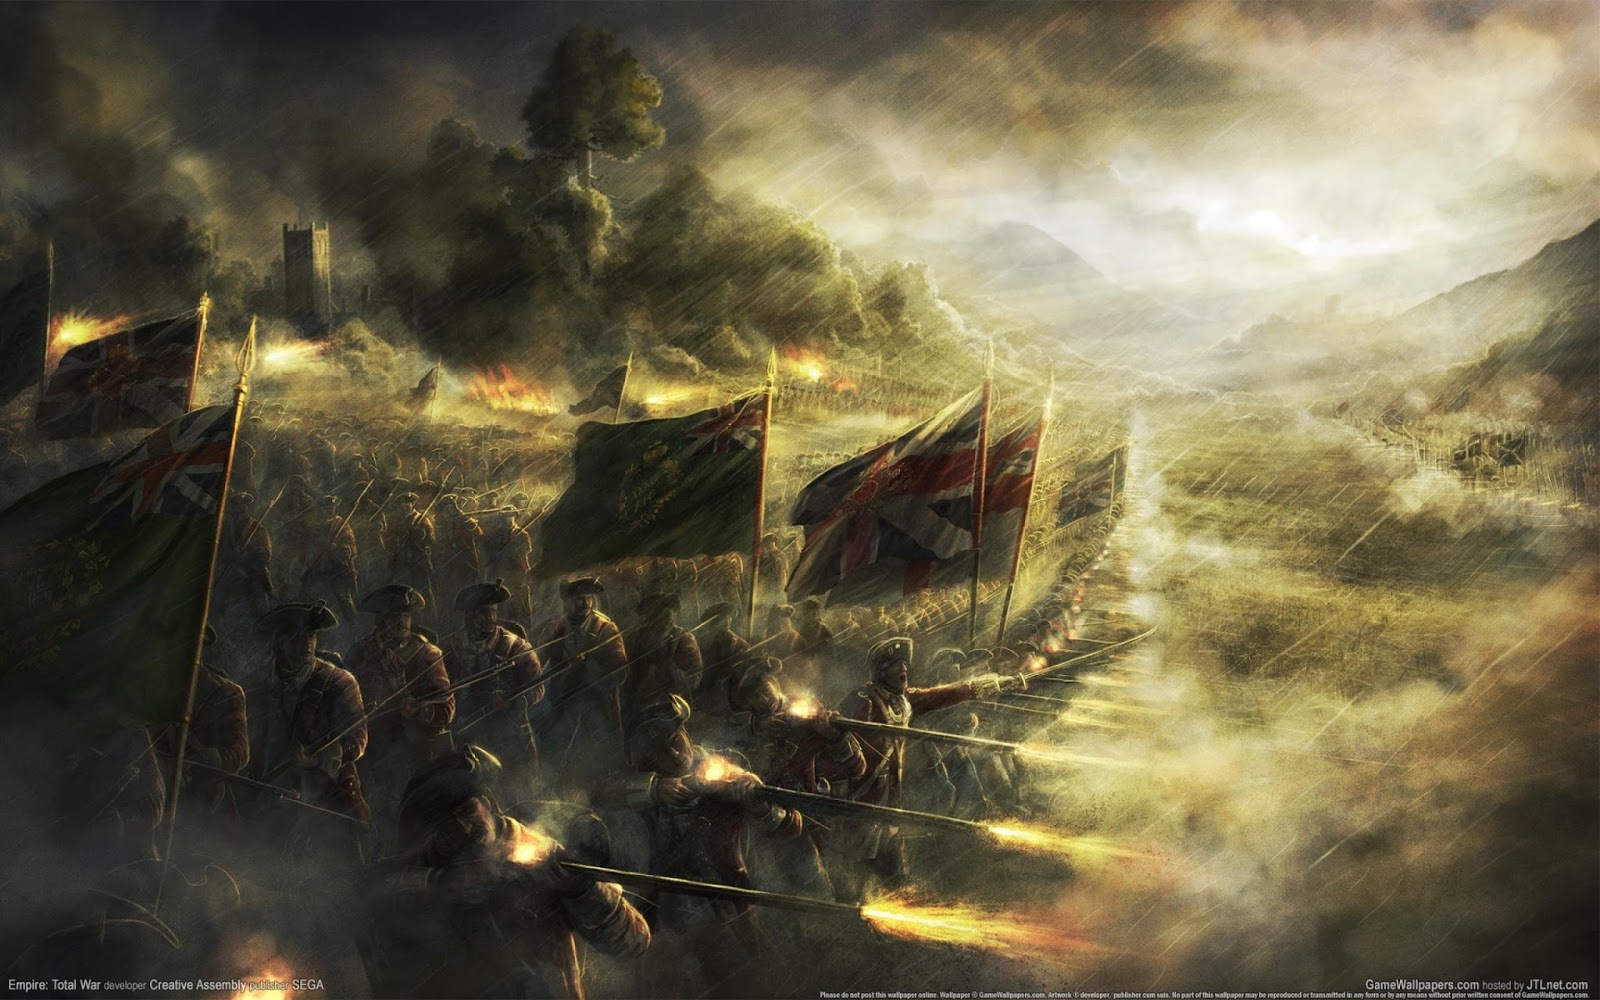 Free Download Wallpapers Hd Wallpapers Age Of Empires Hd